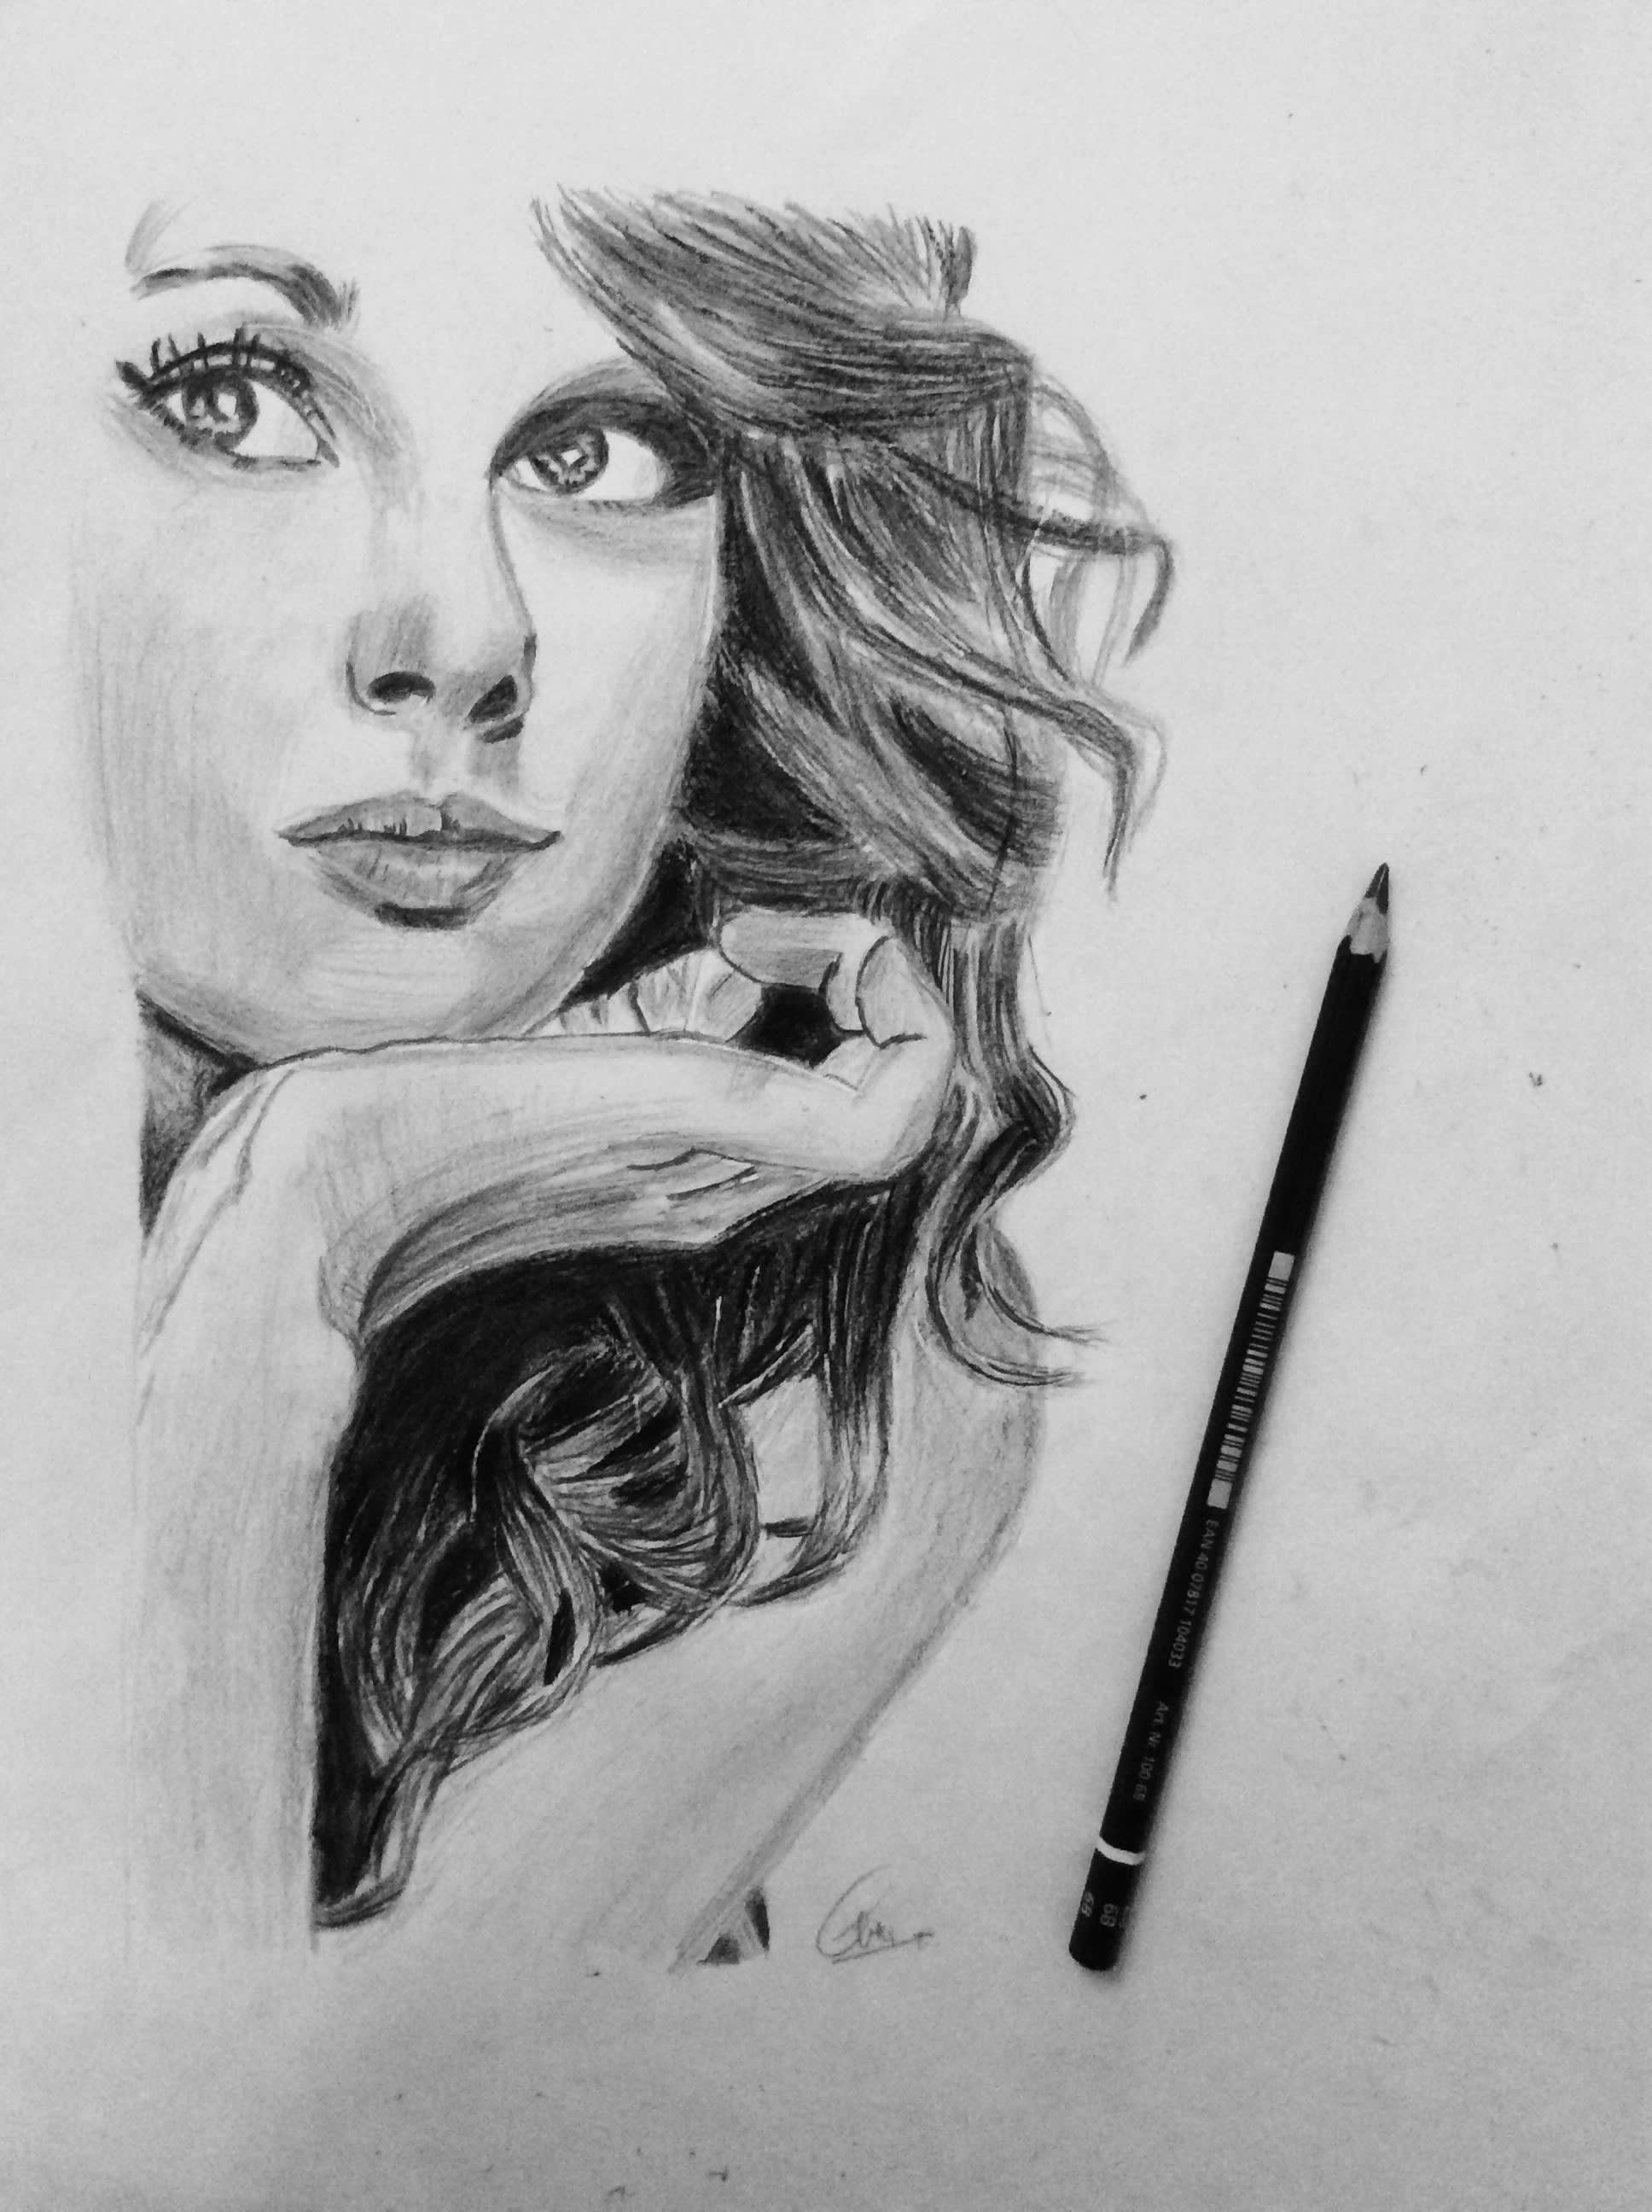 Turn your photo into a hand drawn charcoal sketch by abhibavishi